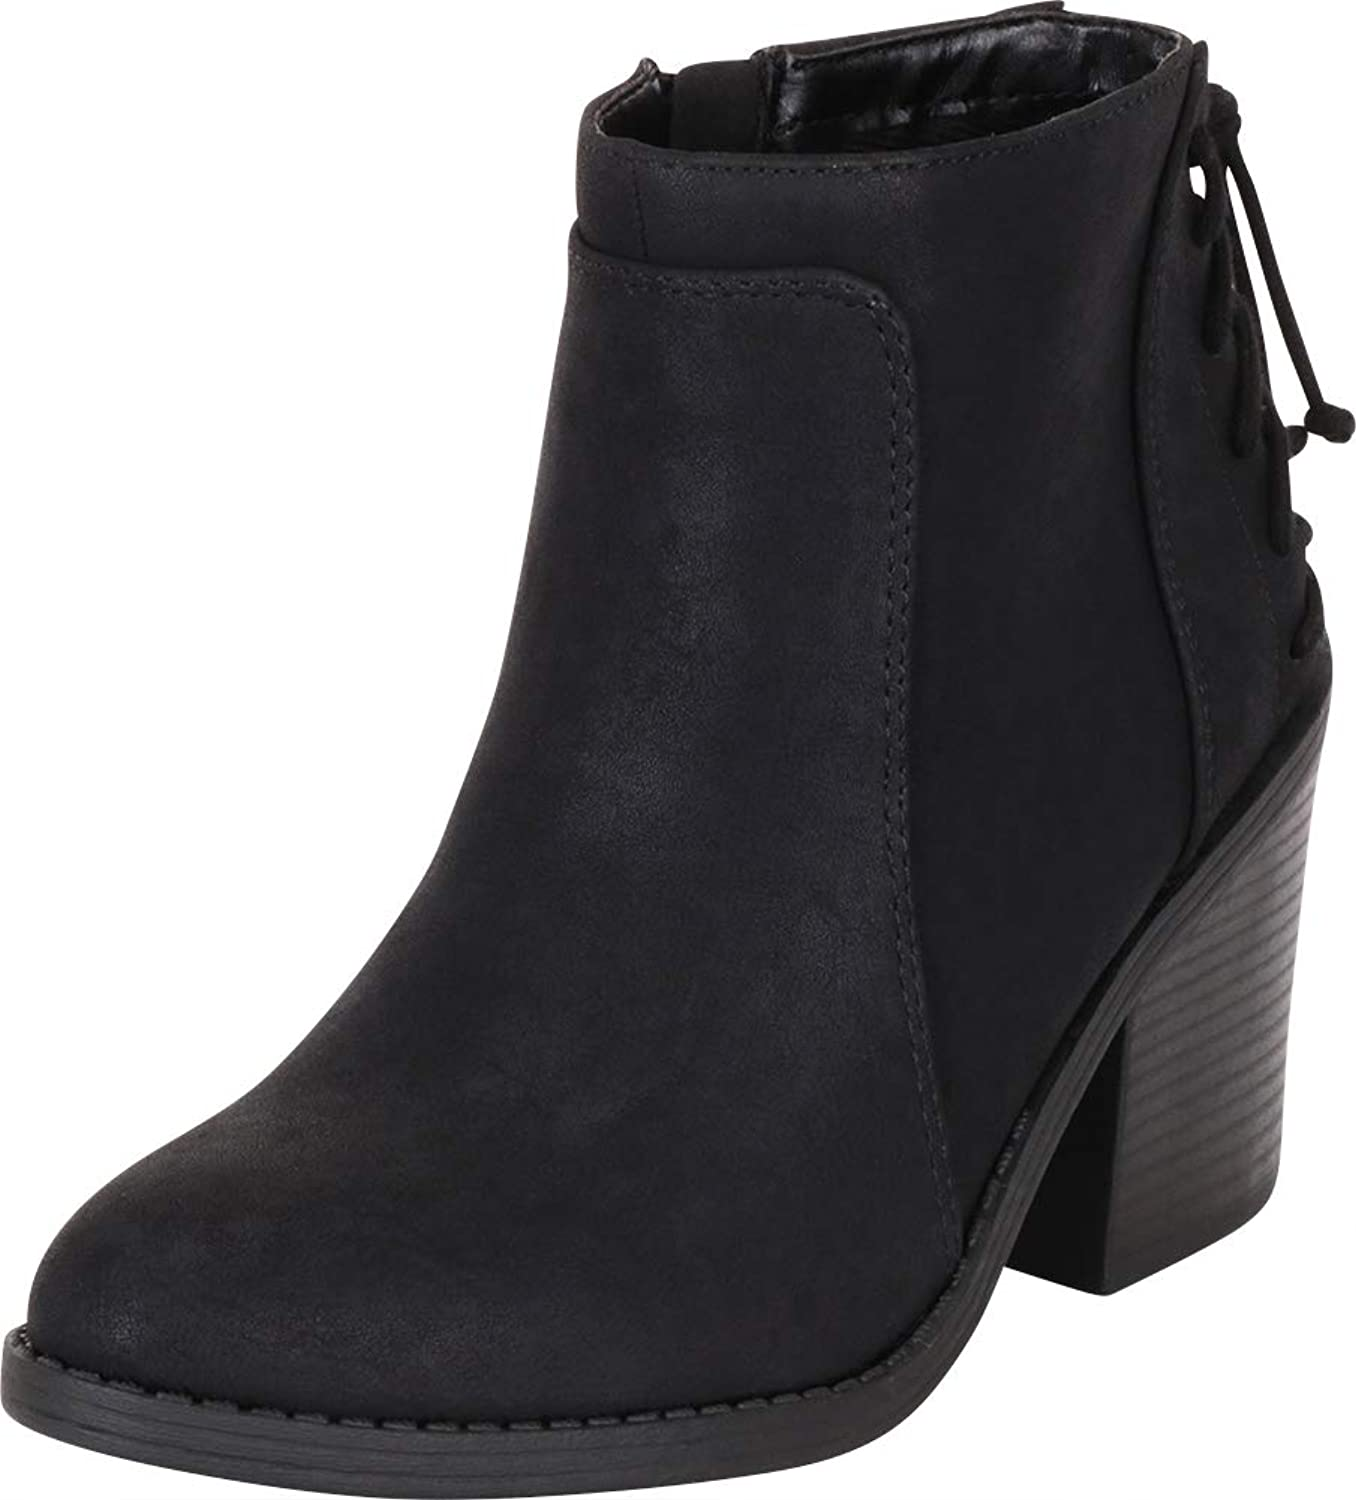 Cambridge Select Women's Back Corset Lace Chunky Stacked Heel Ankle Bootie